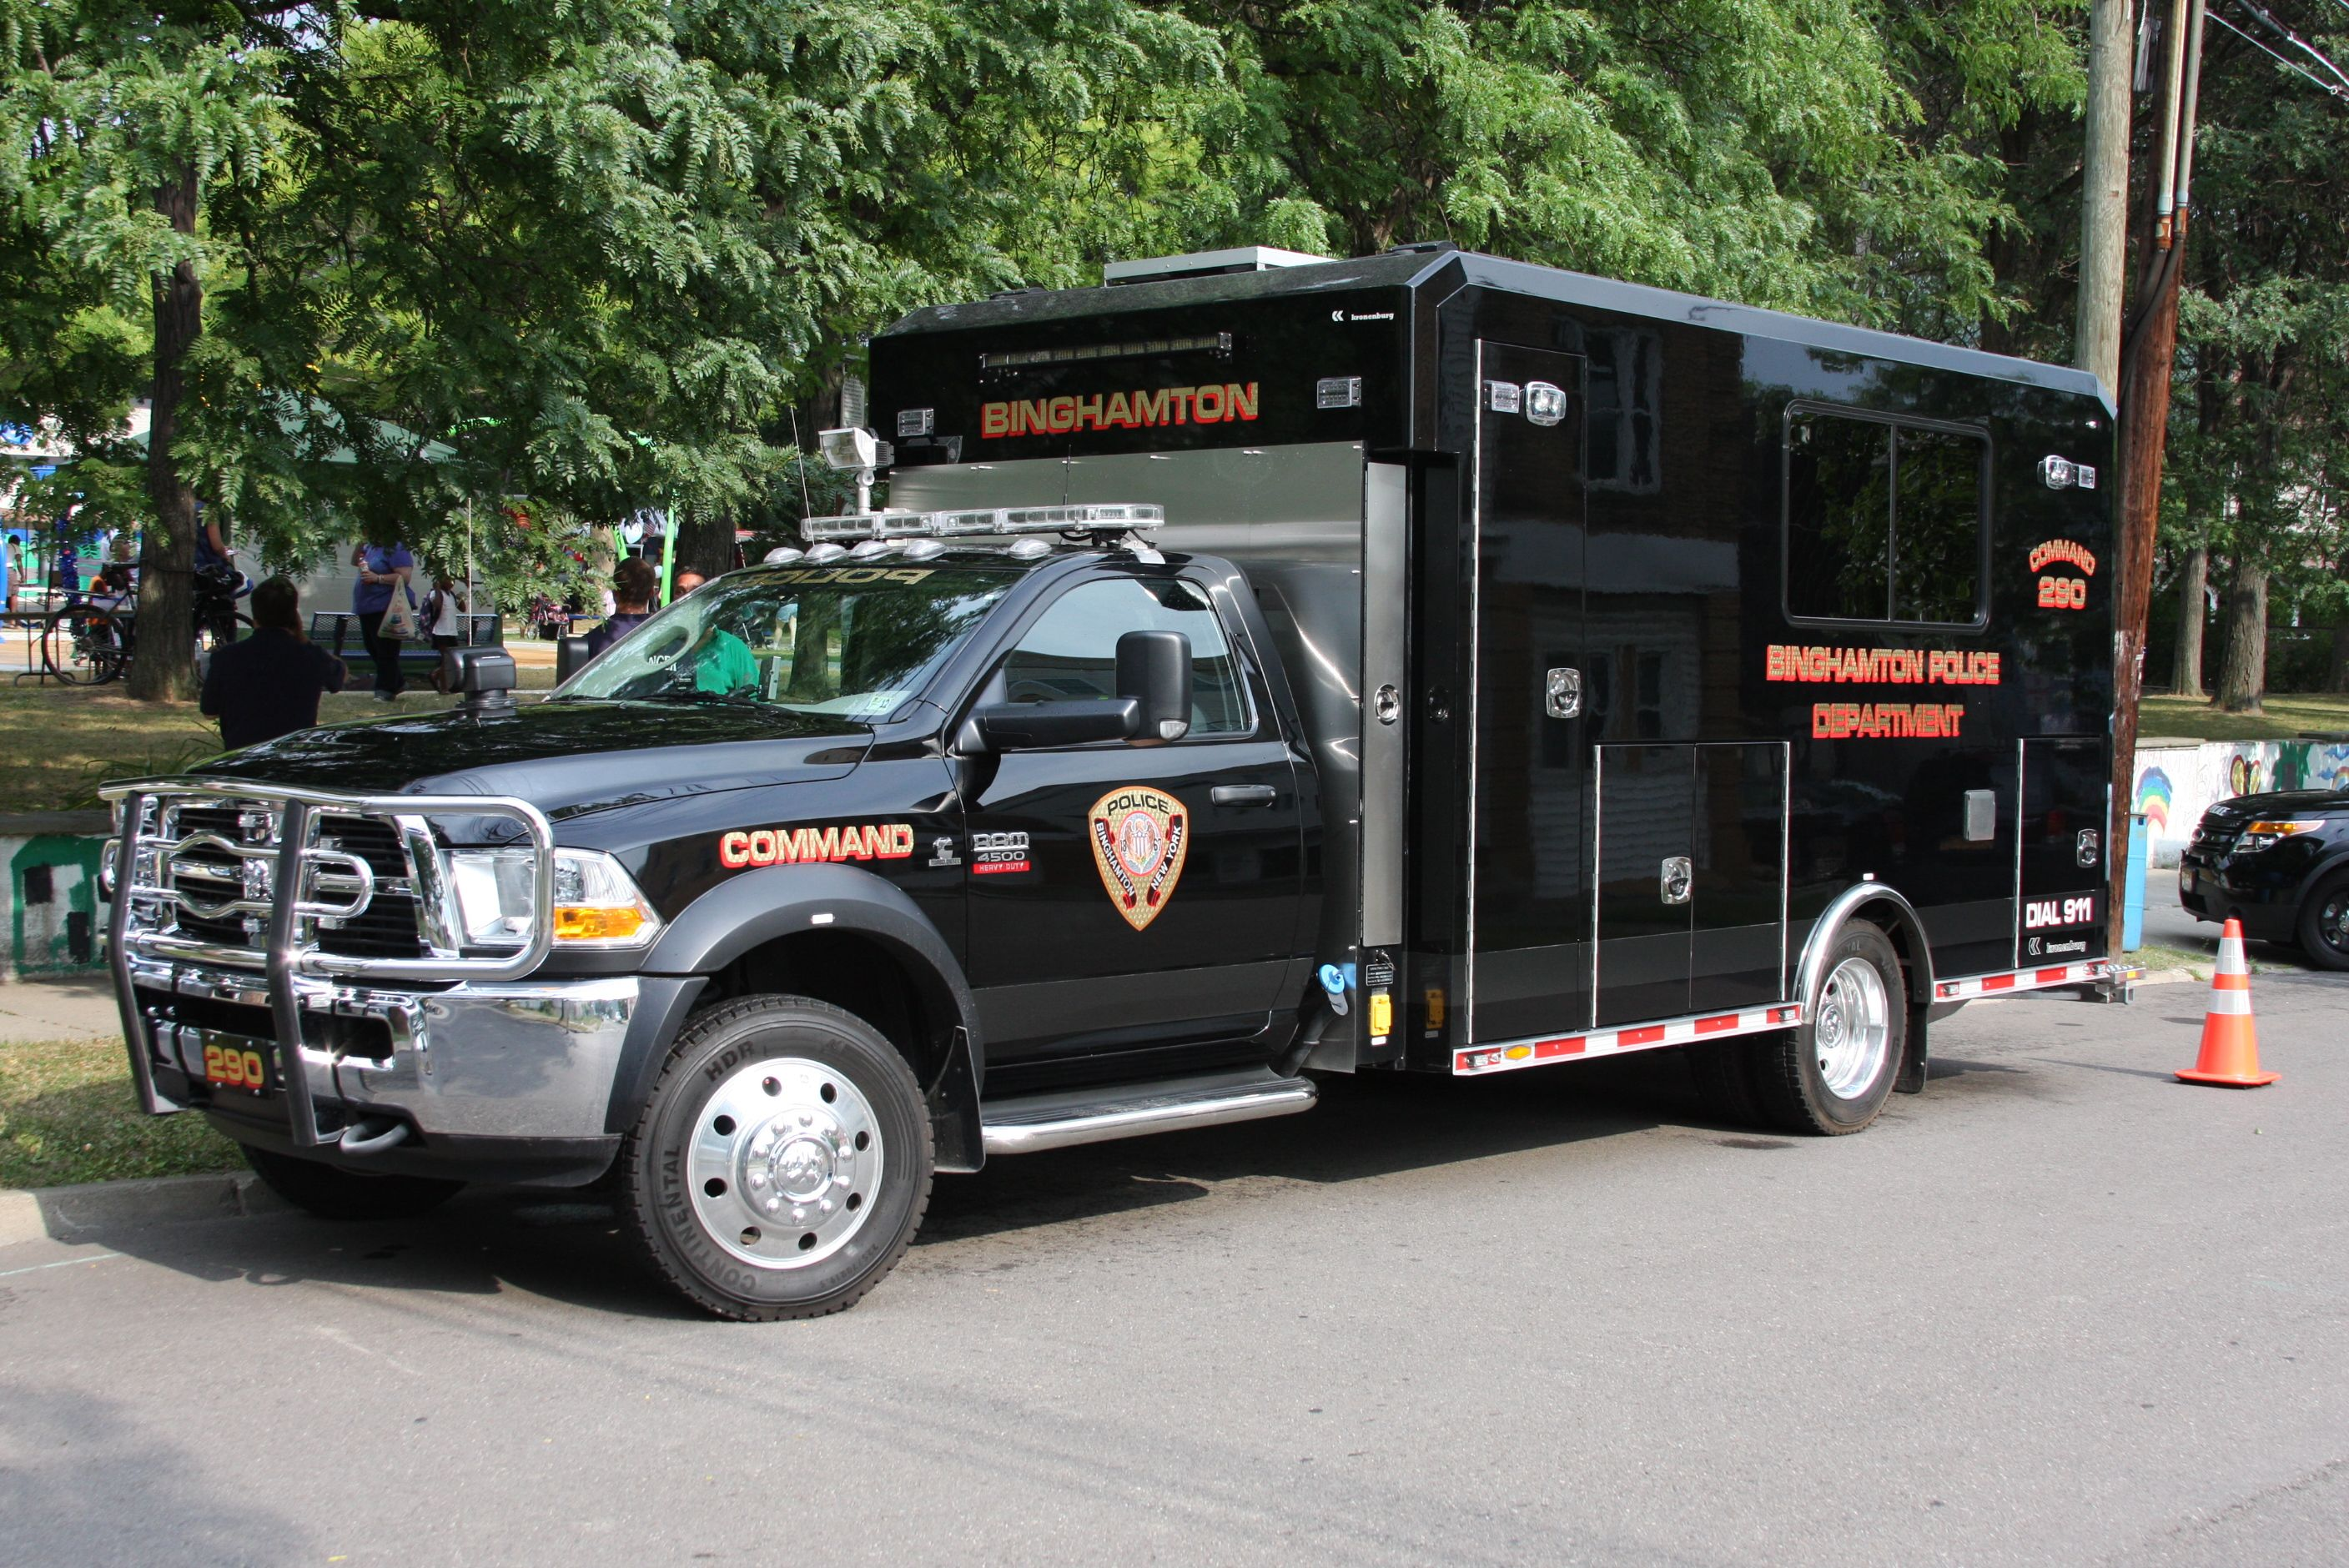 Command Vehicle | Police Vehicles | Vehicles, Police cars